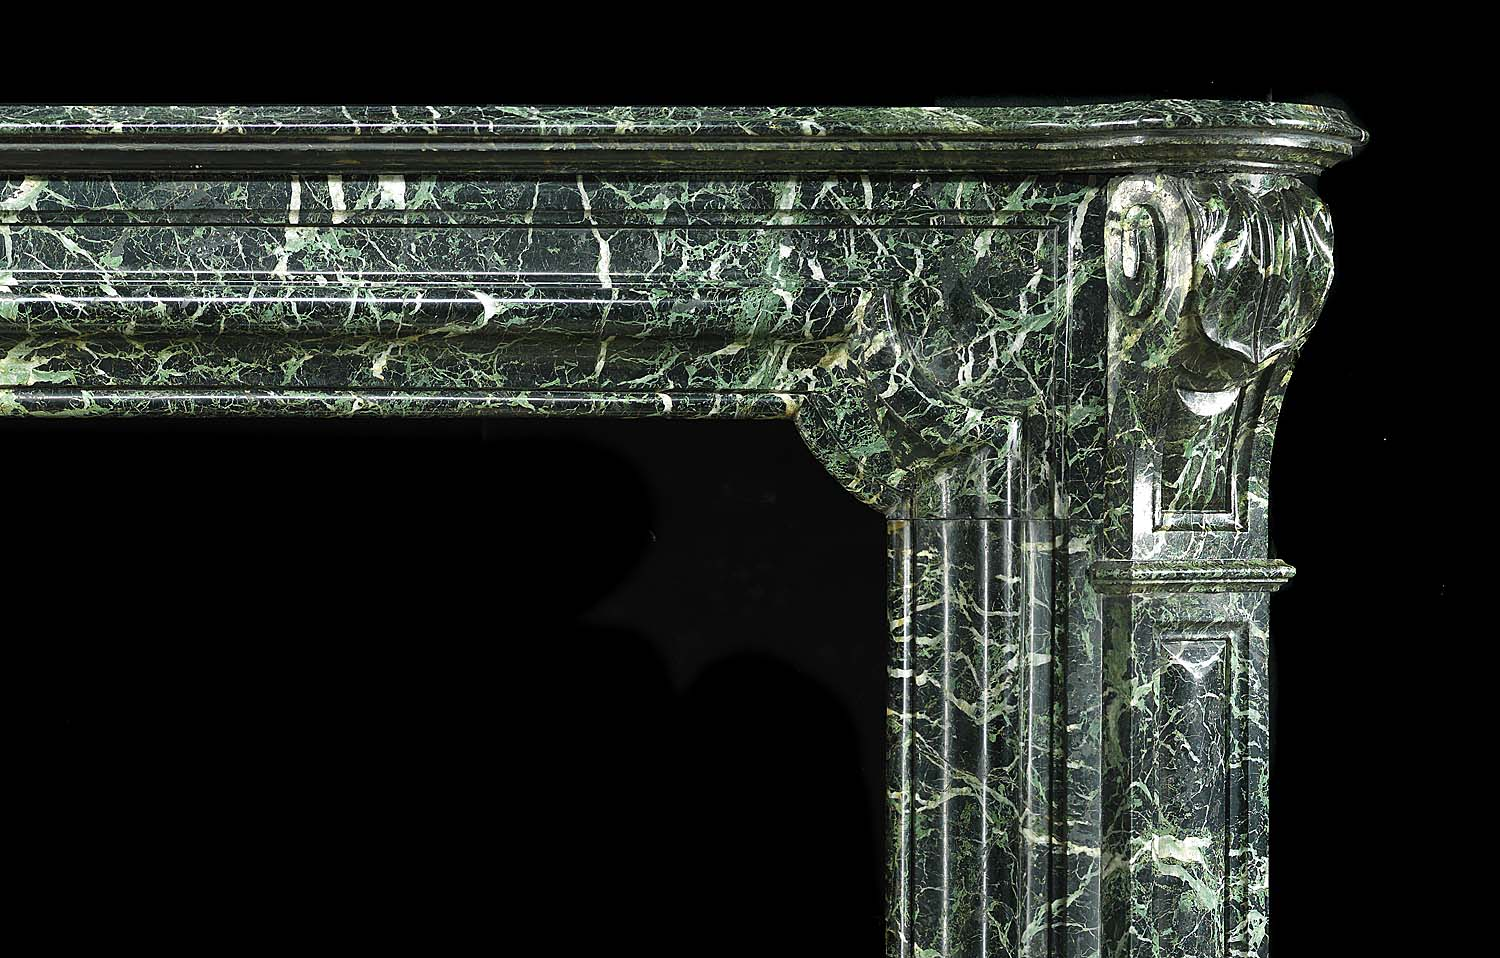 Antique Green Marble Bolection Louis XIV French Chimneypiece   A large Antique Baroque Bolection Green Marble Fireplace, in the French Louis XIV manner. The jambs are decorated with large scrolls and brackets. Mid 19th century.